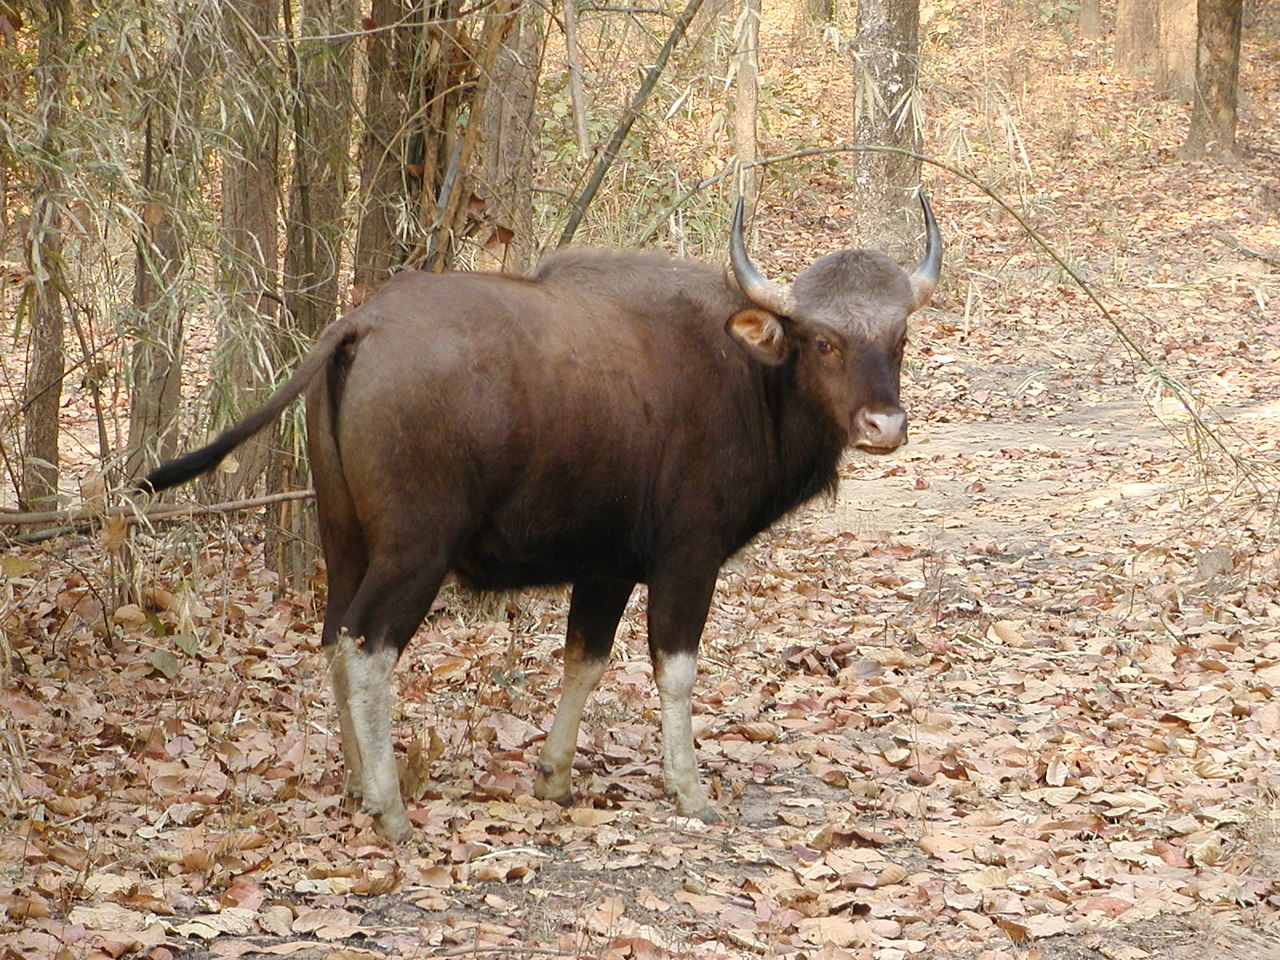 Gaur are big creatures and not normally vulnerable to attack by a tiger.  However, one tiger had leqanred to hunt gaur successfully.  We were not allowed to go see that tiger with its kill.  We understood the need to avoid spooking the tiger off its food.